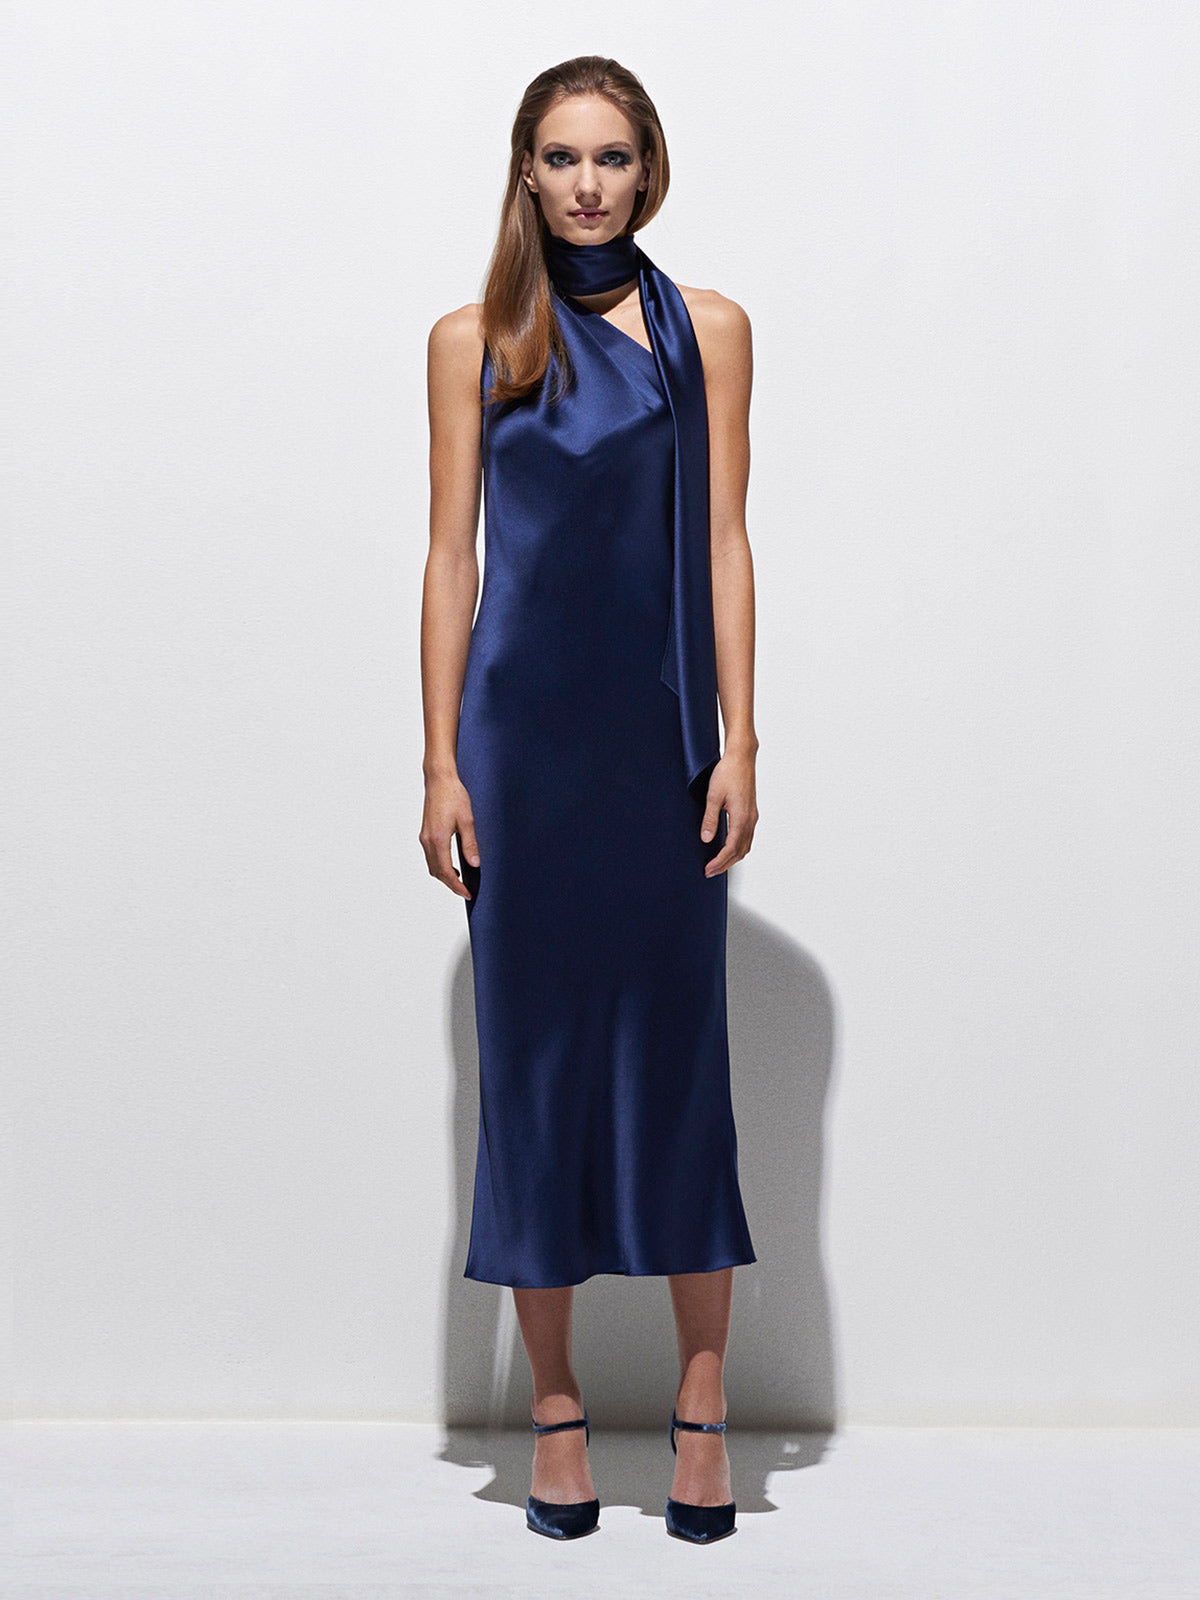 One Shoulder Bias Dress | Marine One Shoulder Bias Dress | Marine